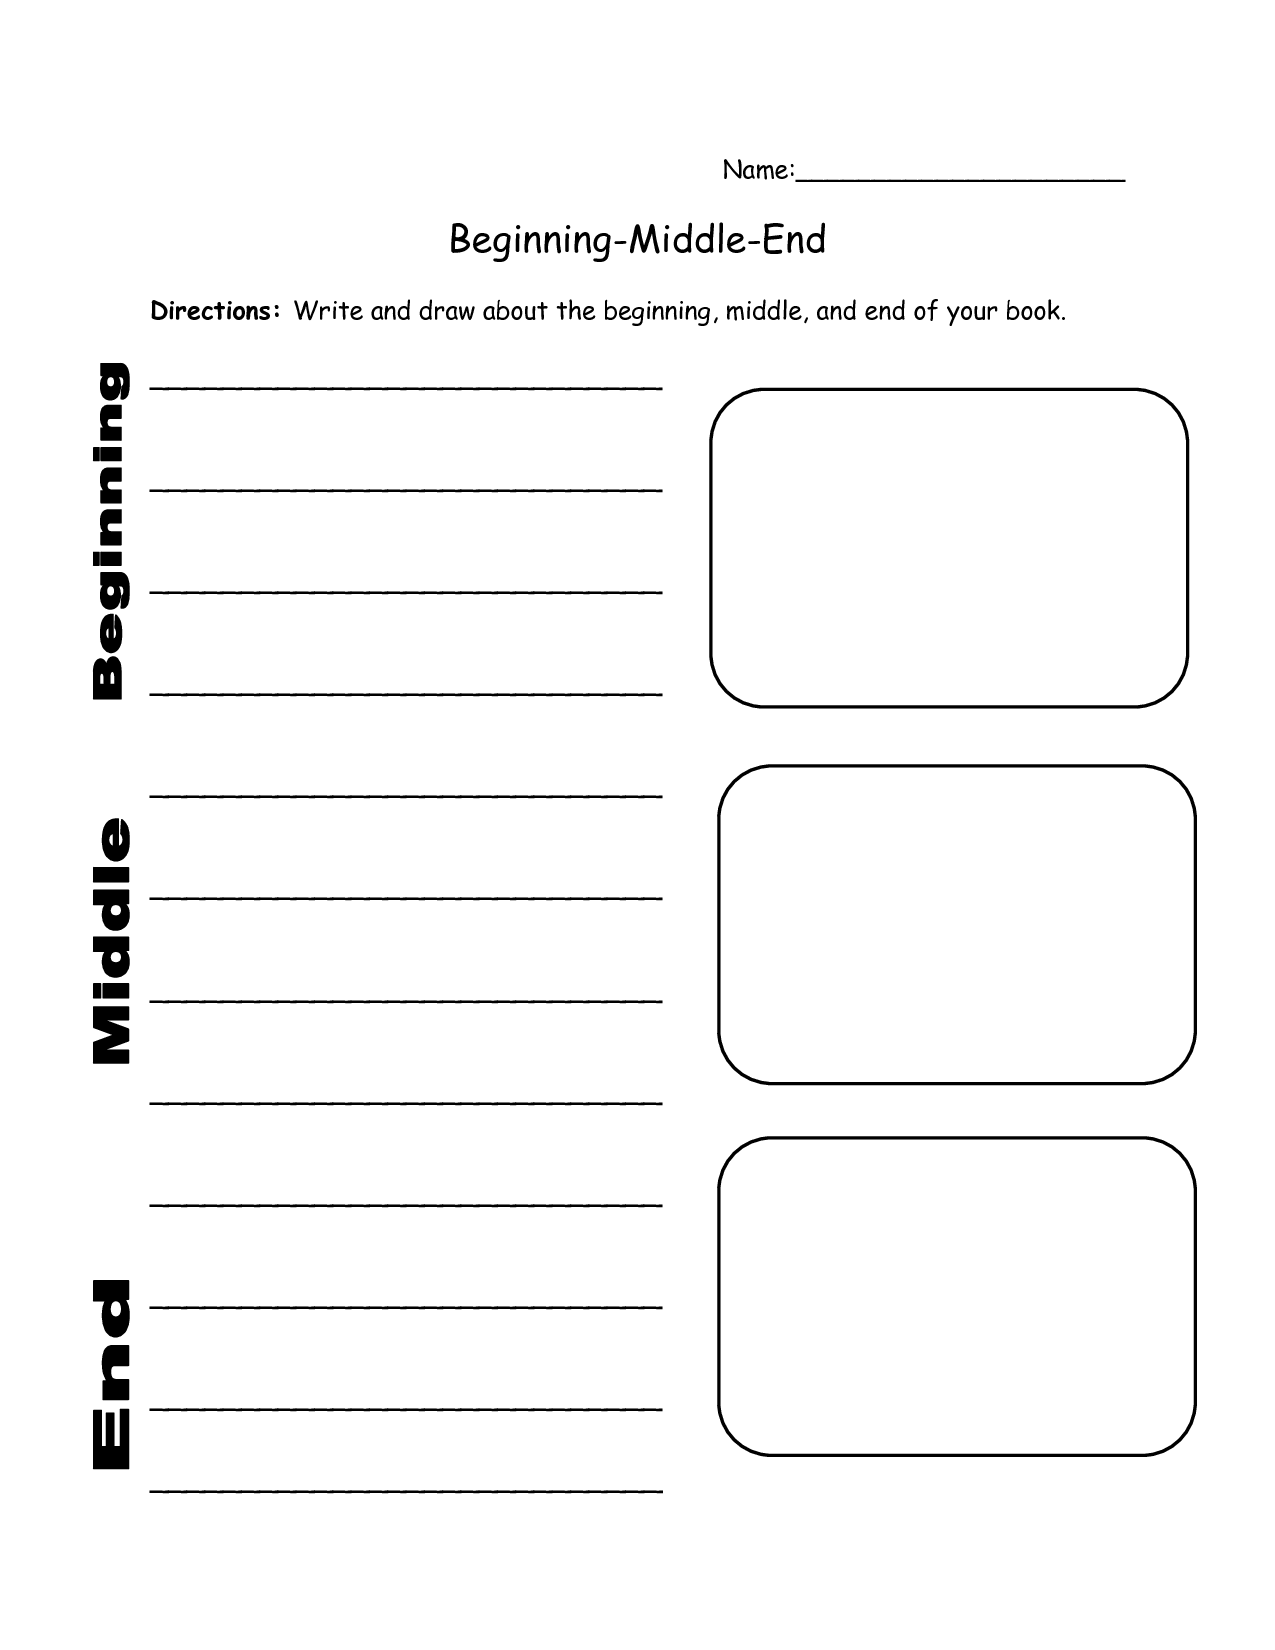 17 Best Images Of Beginning Middle End Worksheet